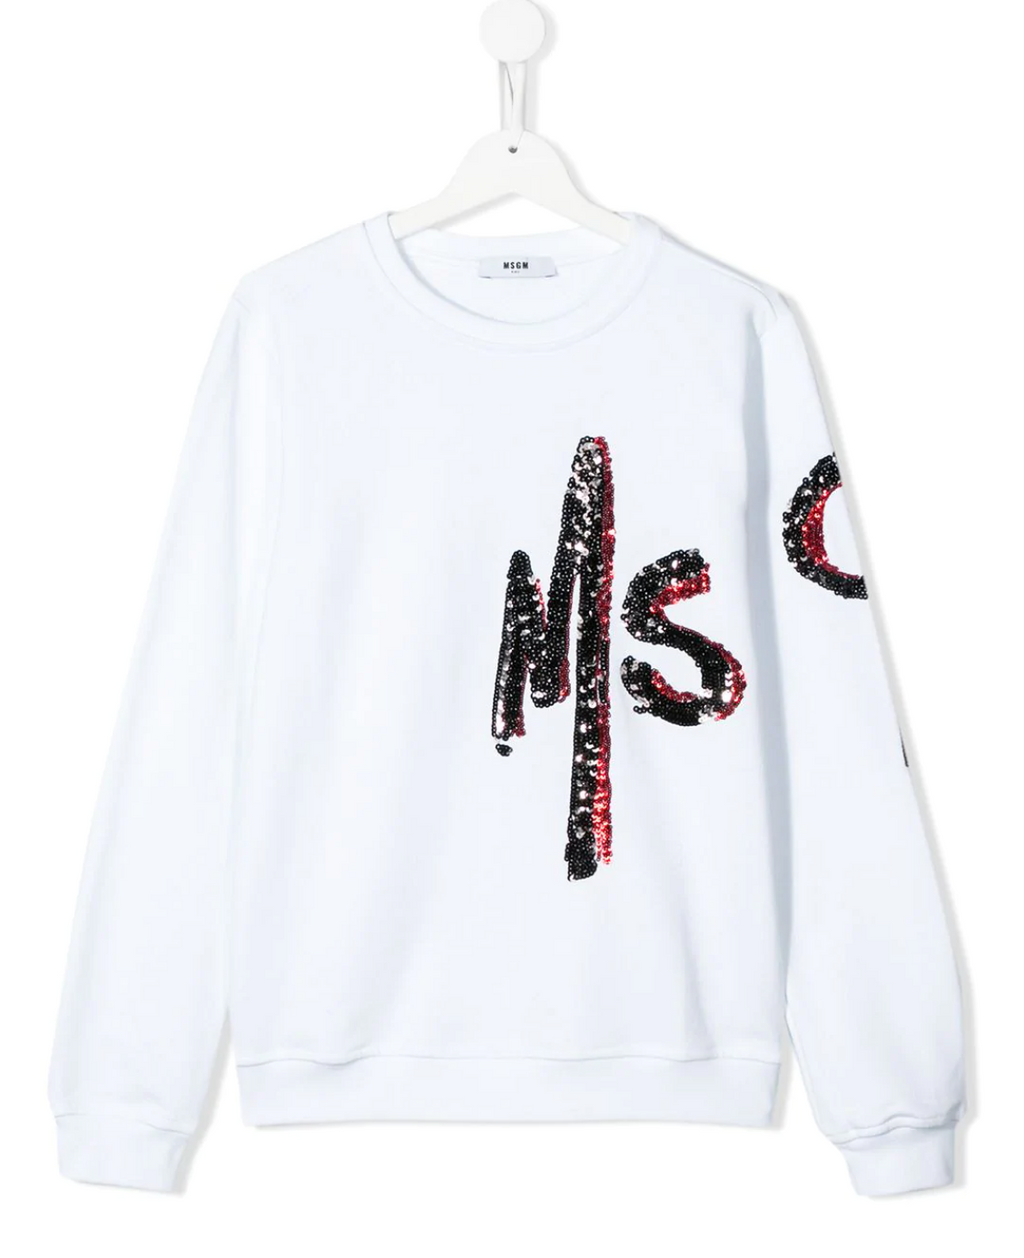 MSGM kids sweatshirt made of comfortable cotton jersey fabric. The forearm and lower arm have flashing black and red MSGM sequined logos.